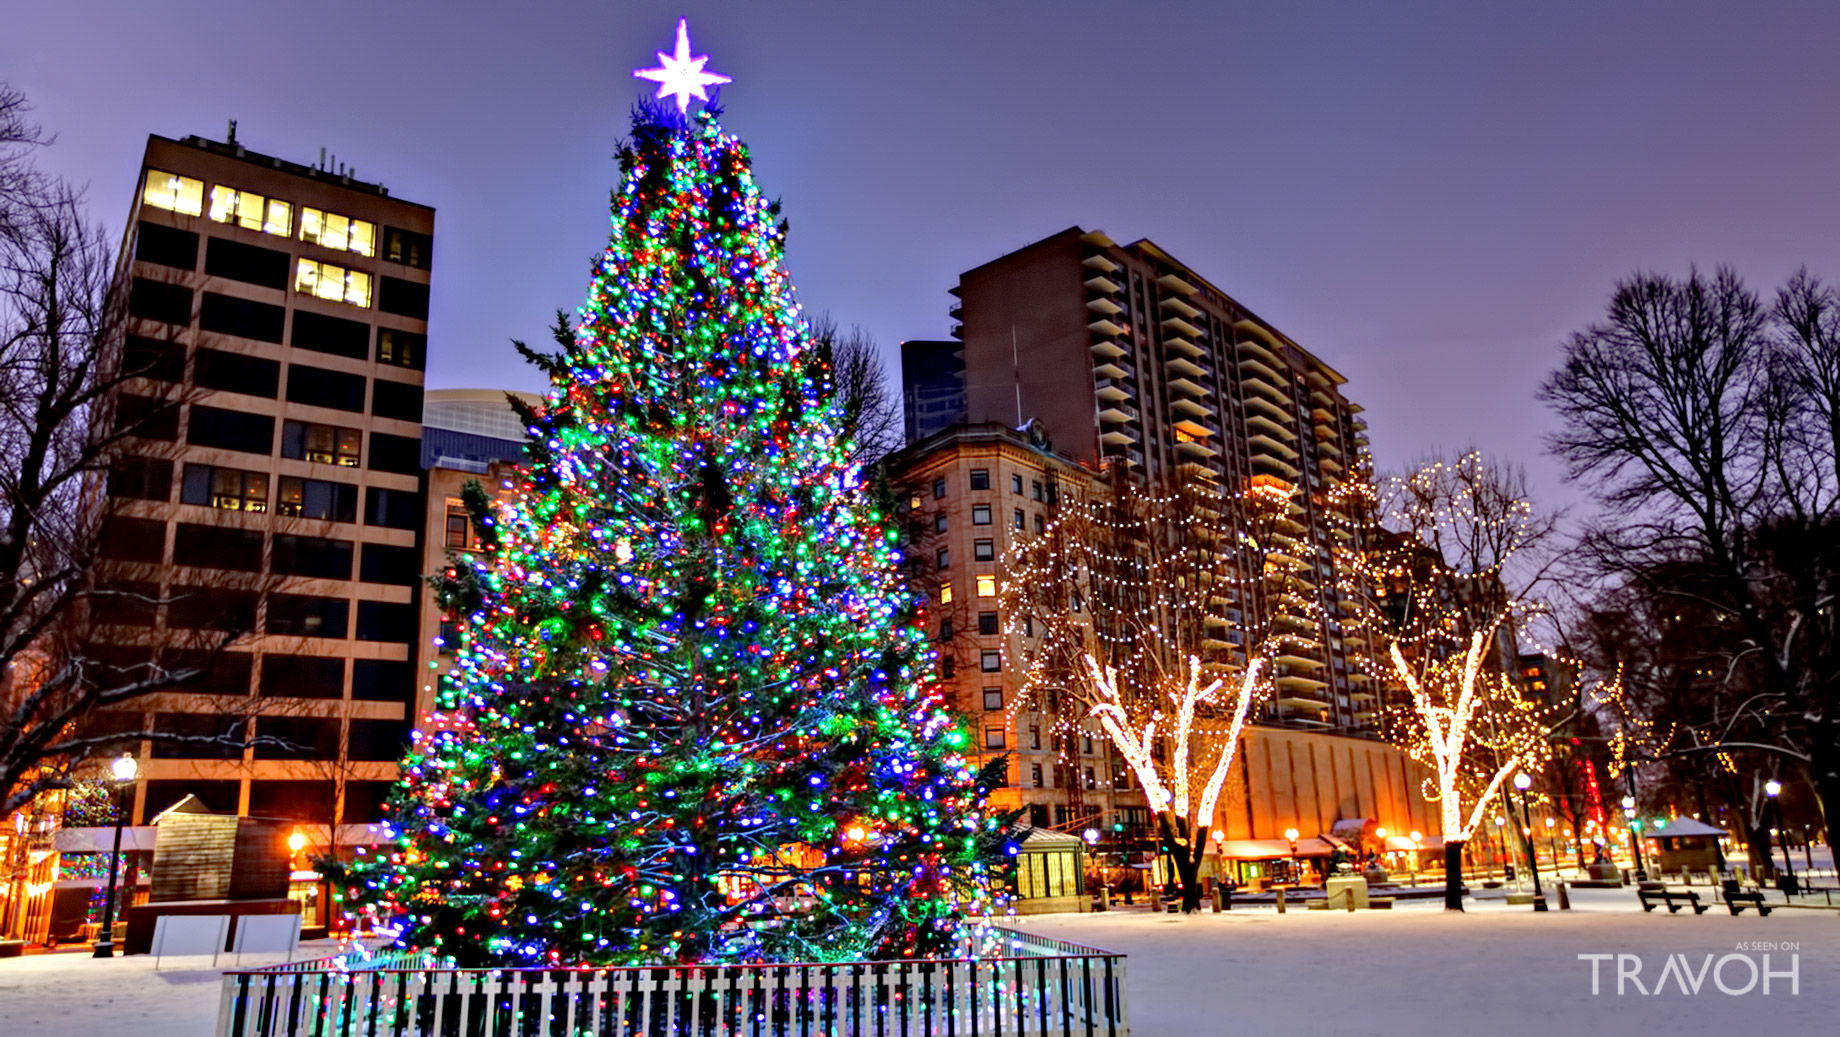 Visit the Boston Christmas Tree - 38 Beacon St, Boston, MA, USA